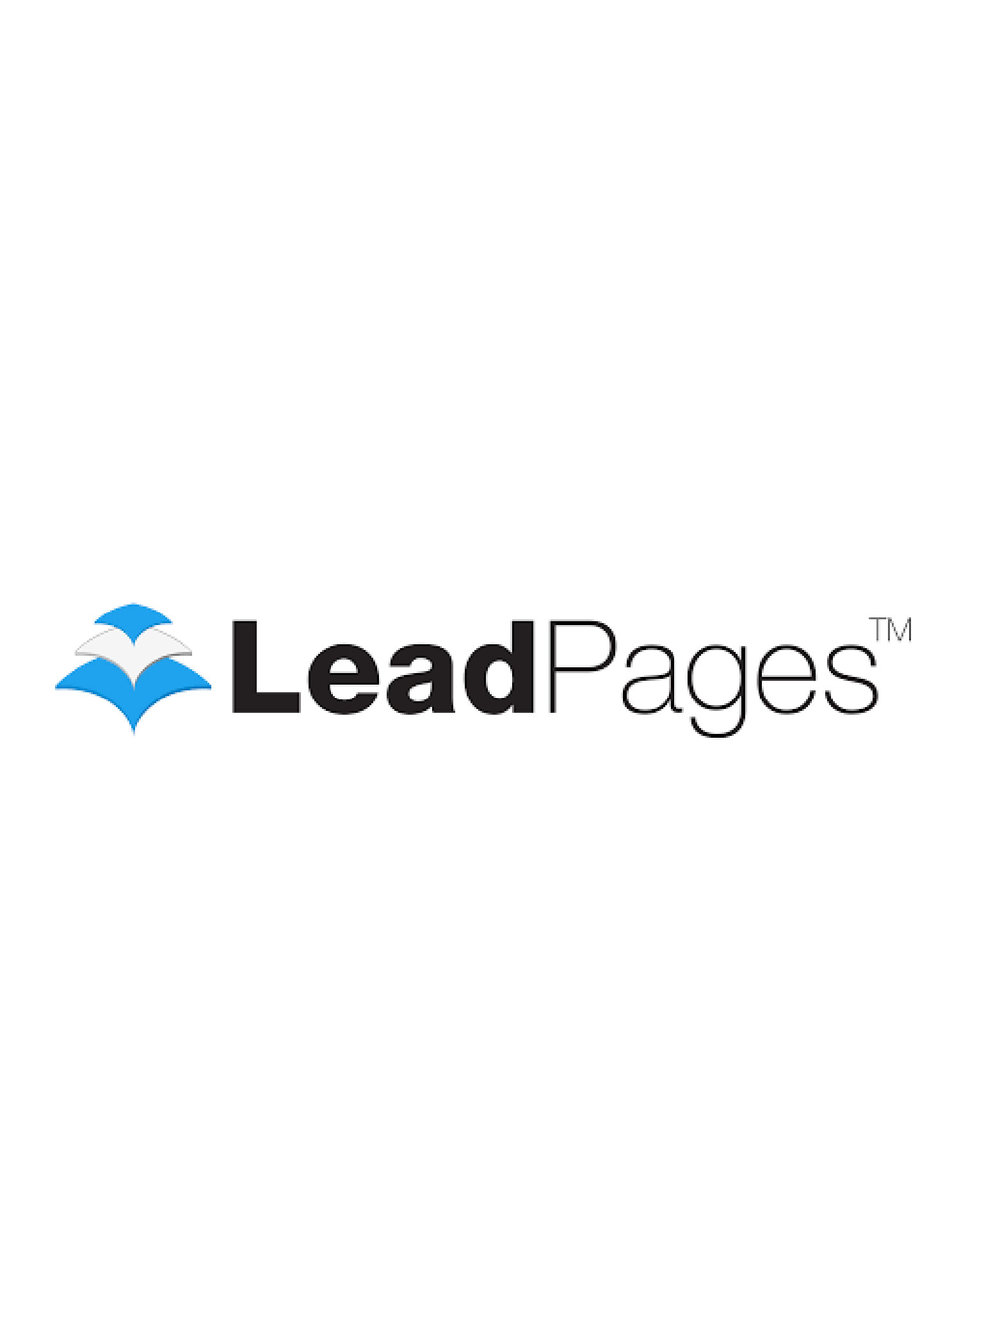 LEADPAGESvisit the site